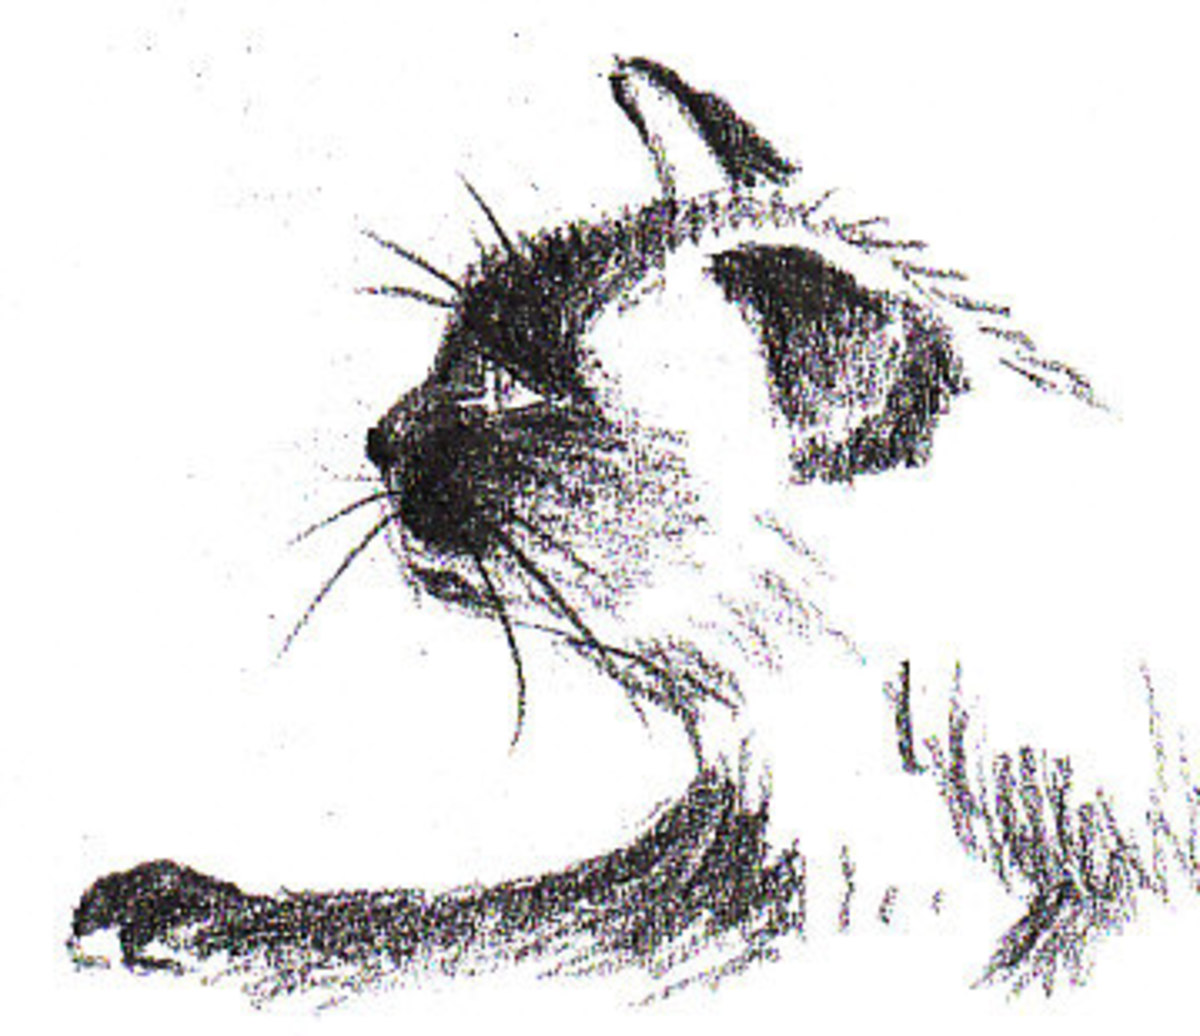 Finished Siamese Cat Profile by Robert A. Sloan